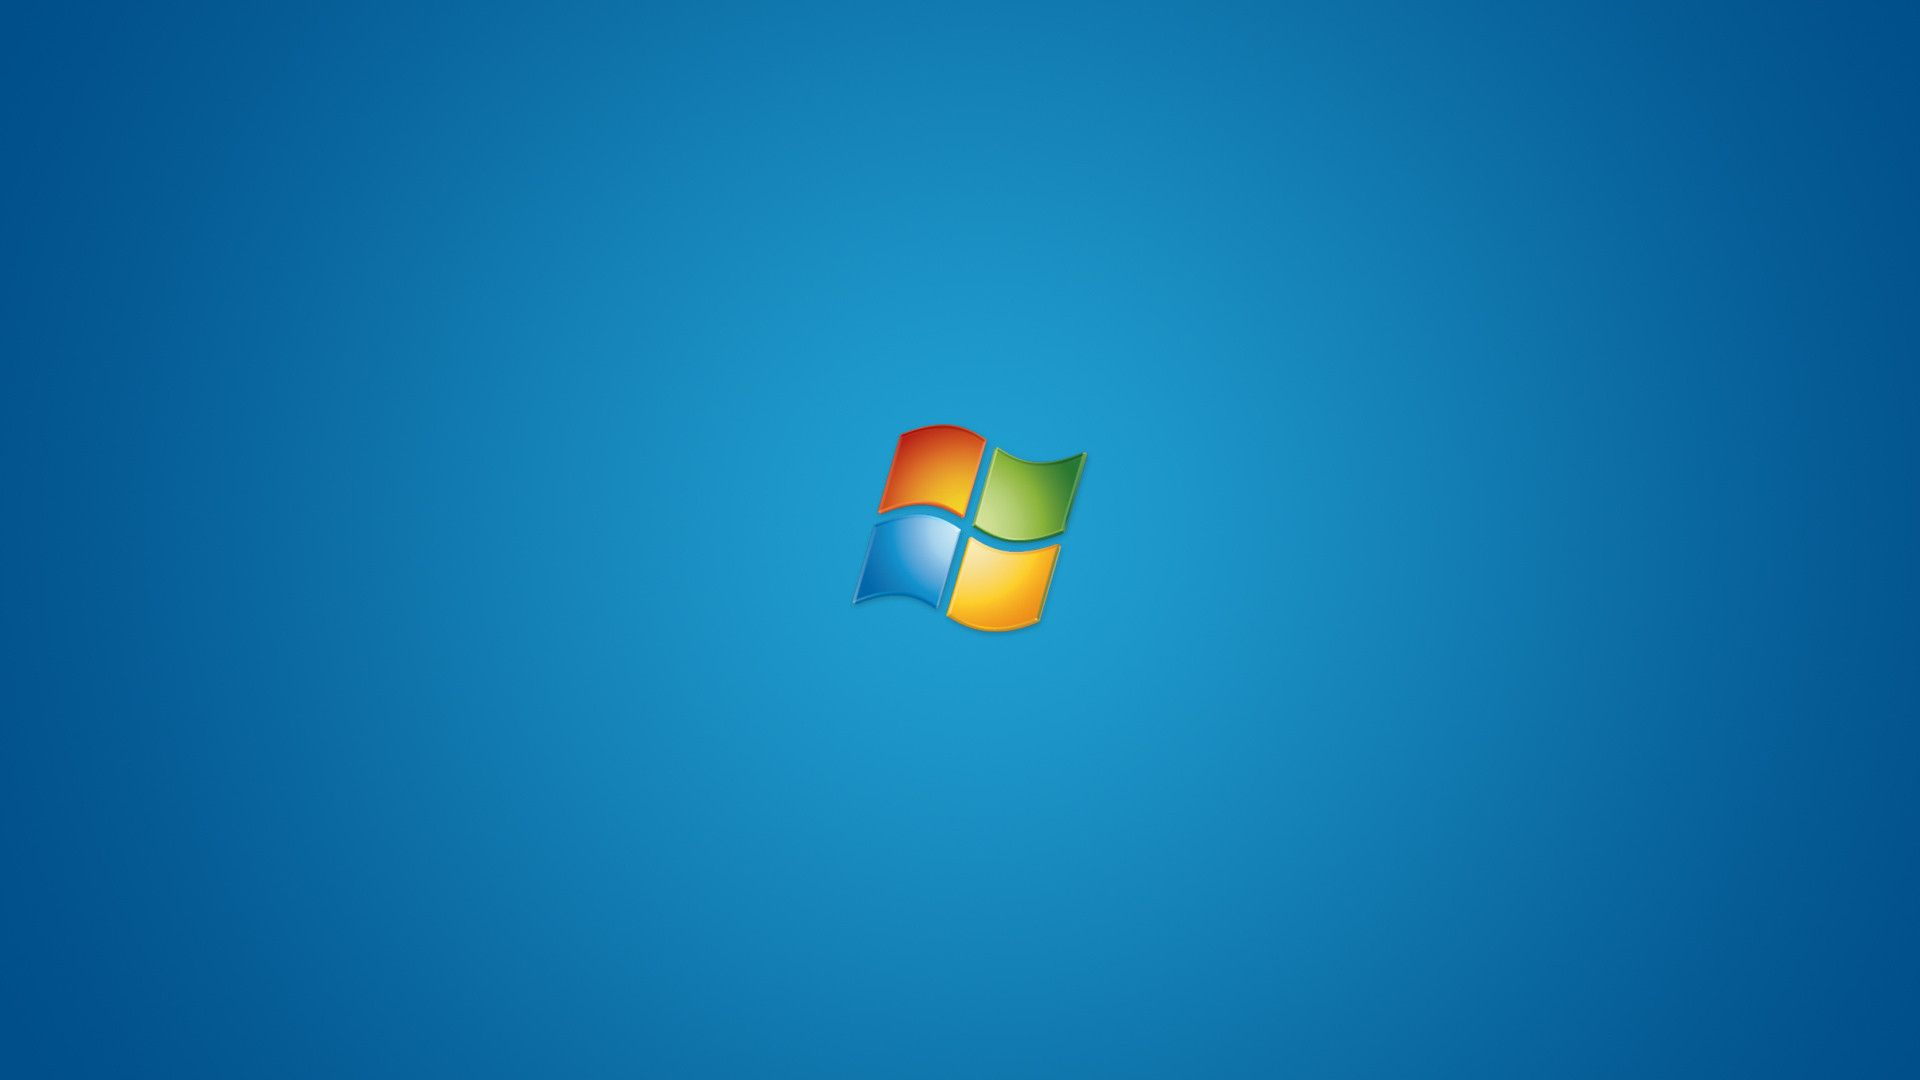 Microsoft Windows Wallpaper